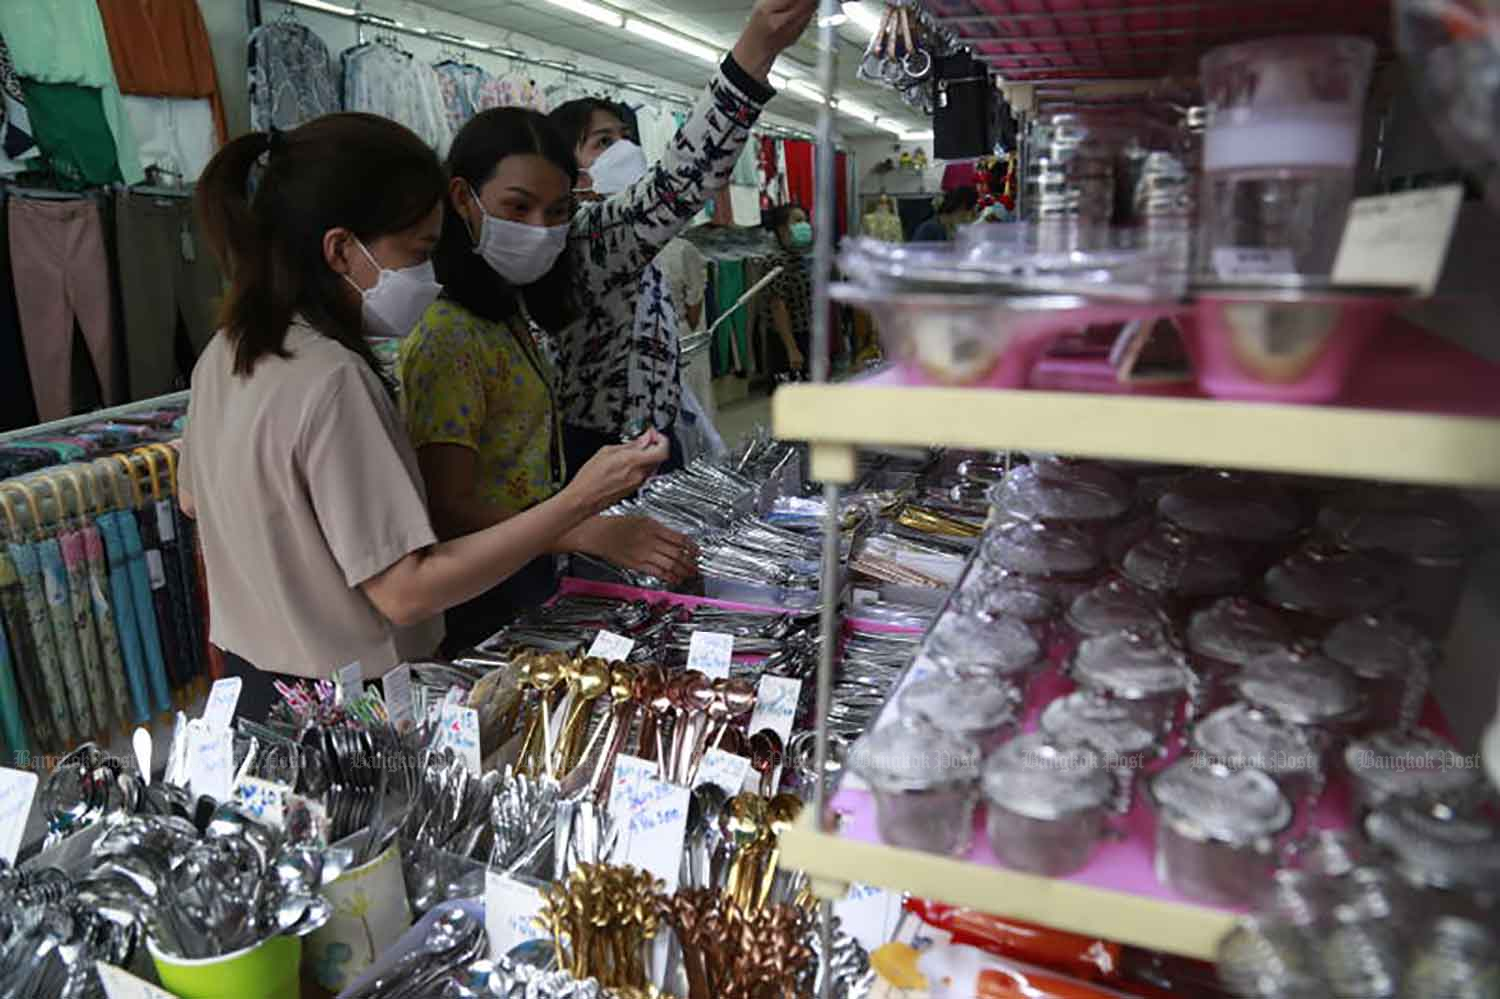 Shoppers browse merchandise at a shop at Lalai Sap Market on Silom Road on Monday, where businesses have reopened after a week-long closure prompted by the detection of several Covid-19 infections. (Photo: Arnun Chonmahatrakool)